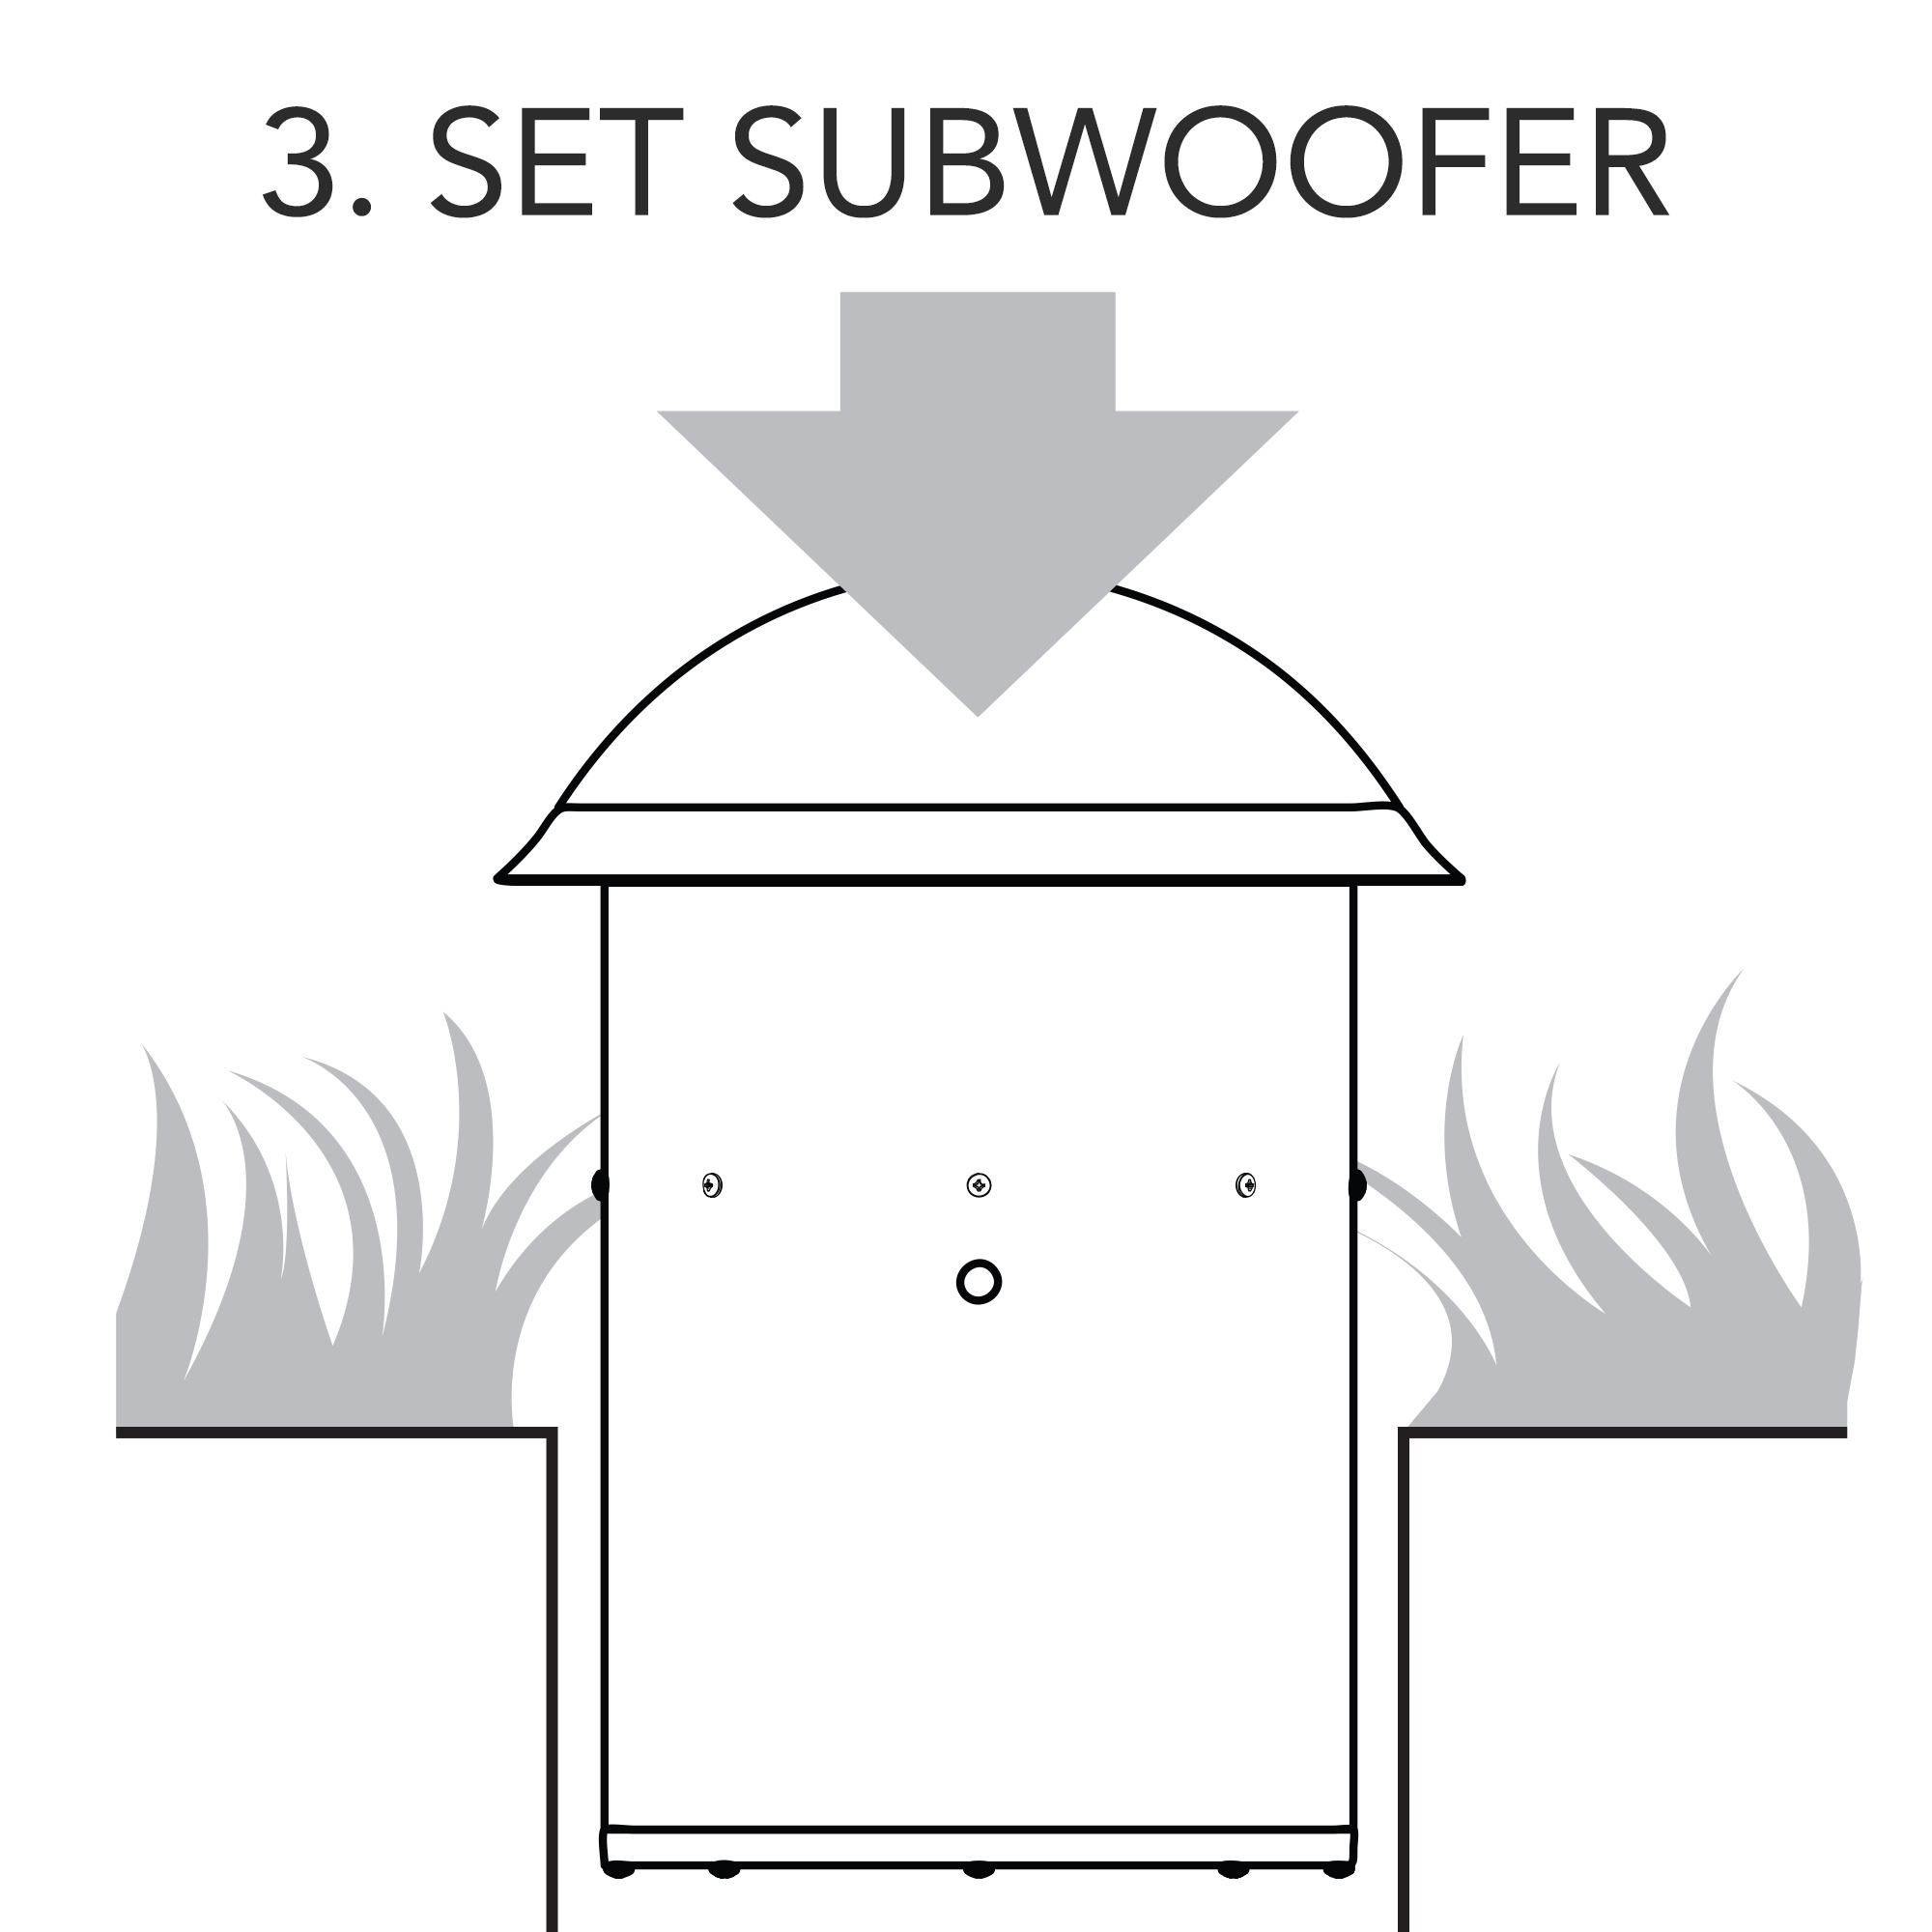 Jamo Diy Landscape Speaker System Subwoofer Wiring Diagram Step 3